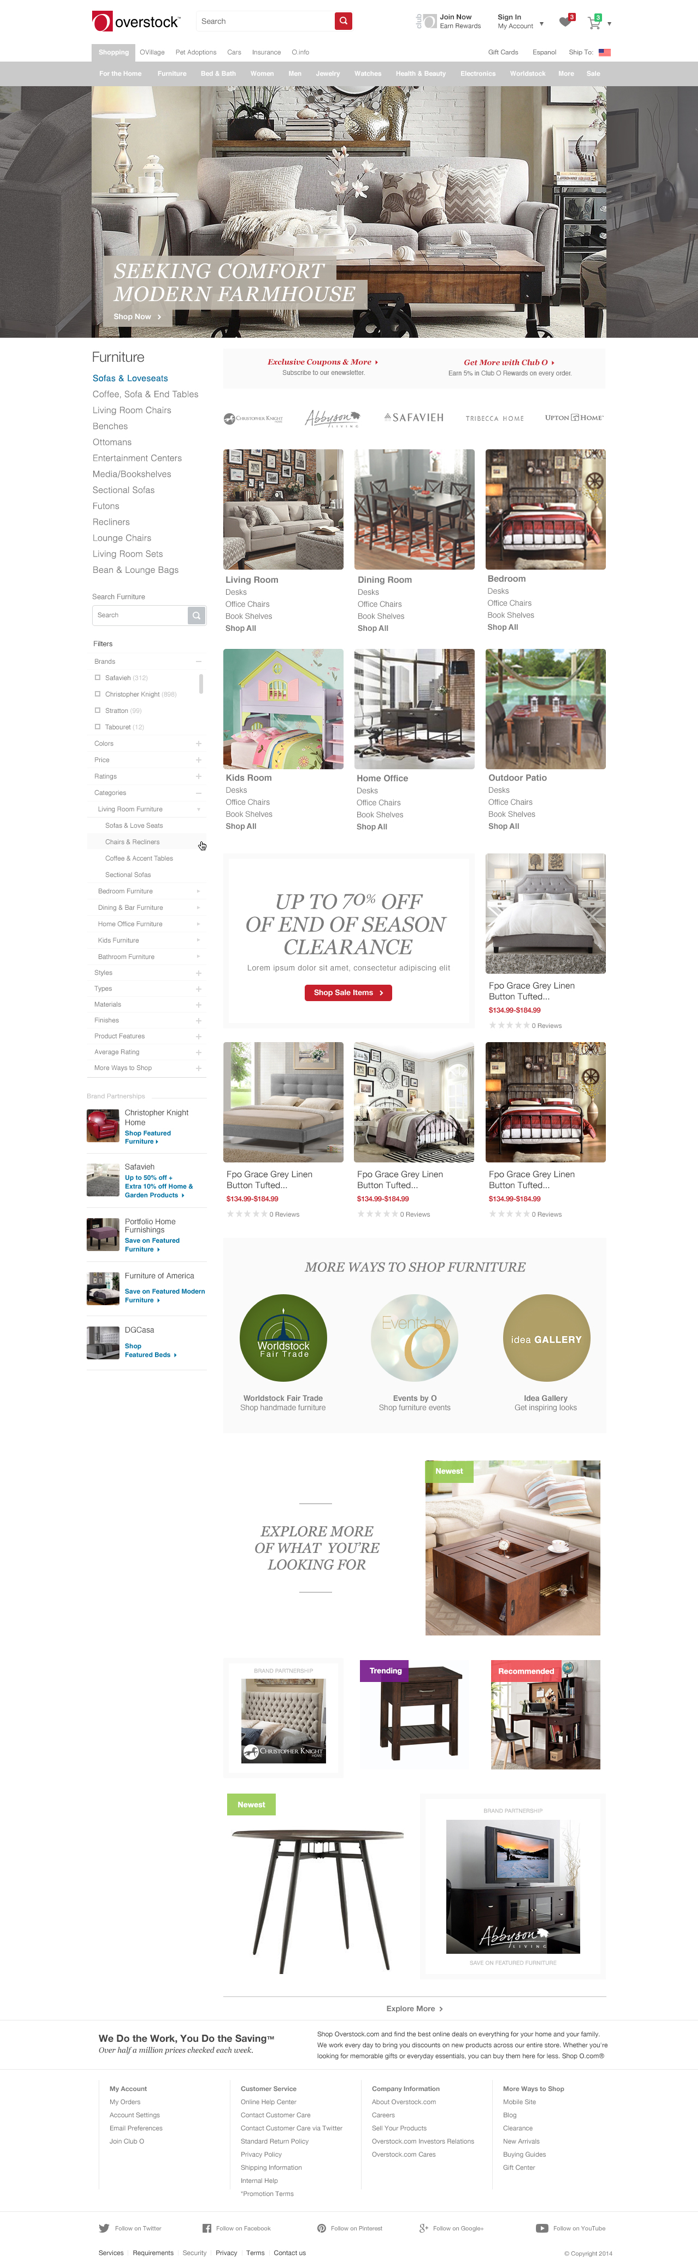 Overstock_Furniture_0913b.png